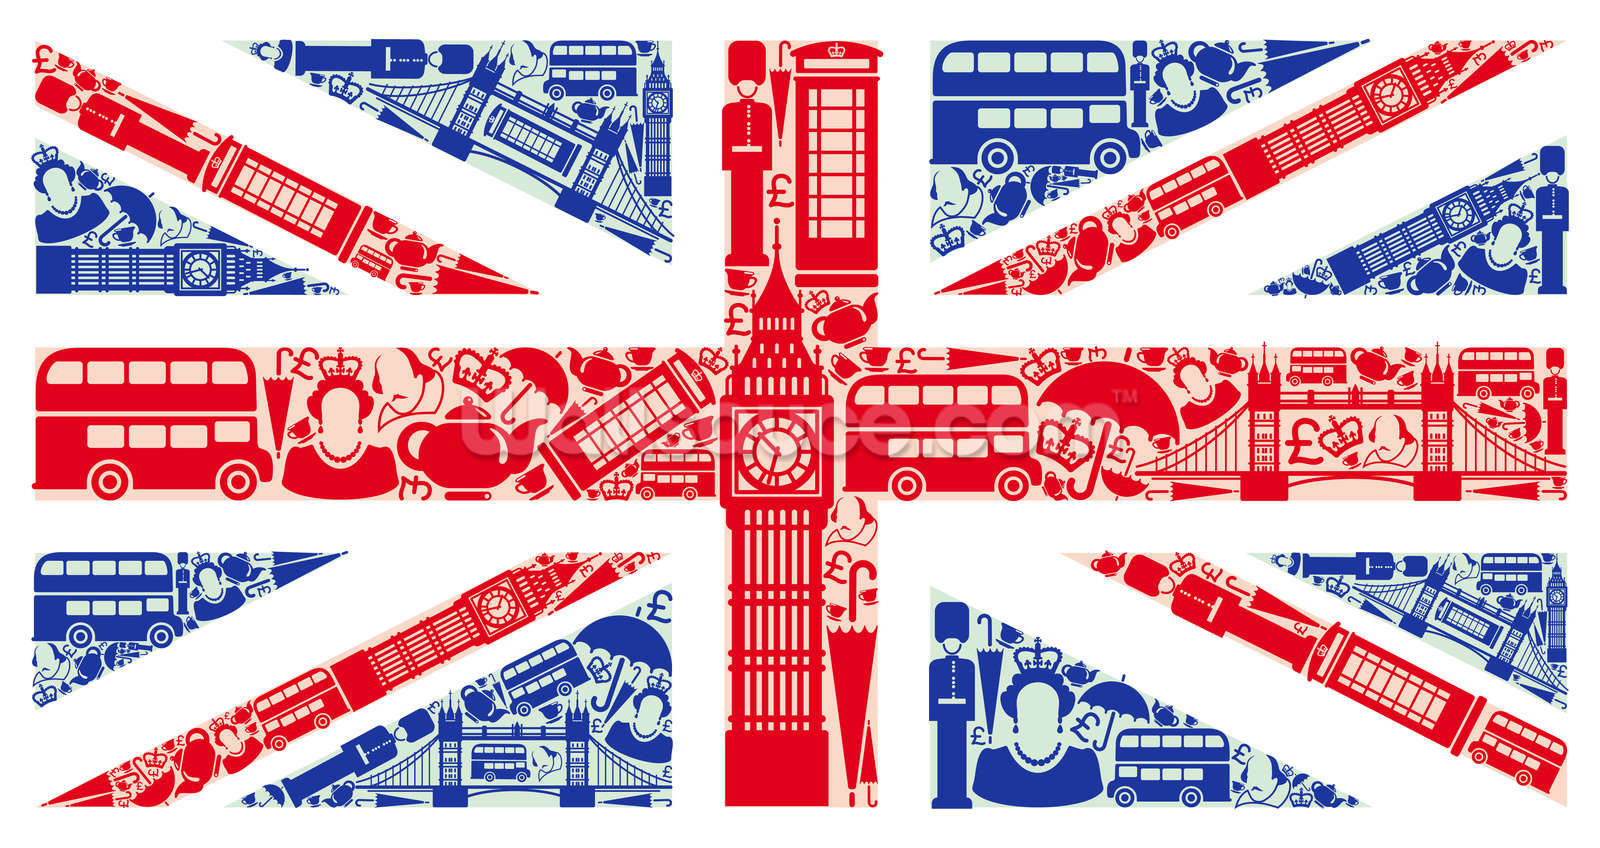 union jack montage wallpaper wall mural wallsauce uk. Black Bedroom Furniture Sets. Home Design Ideas